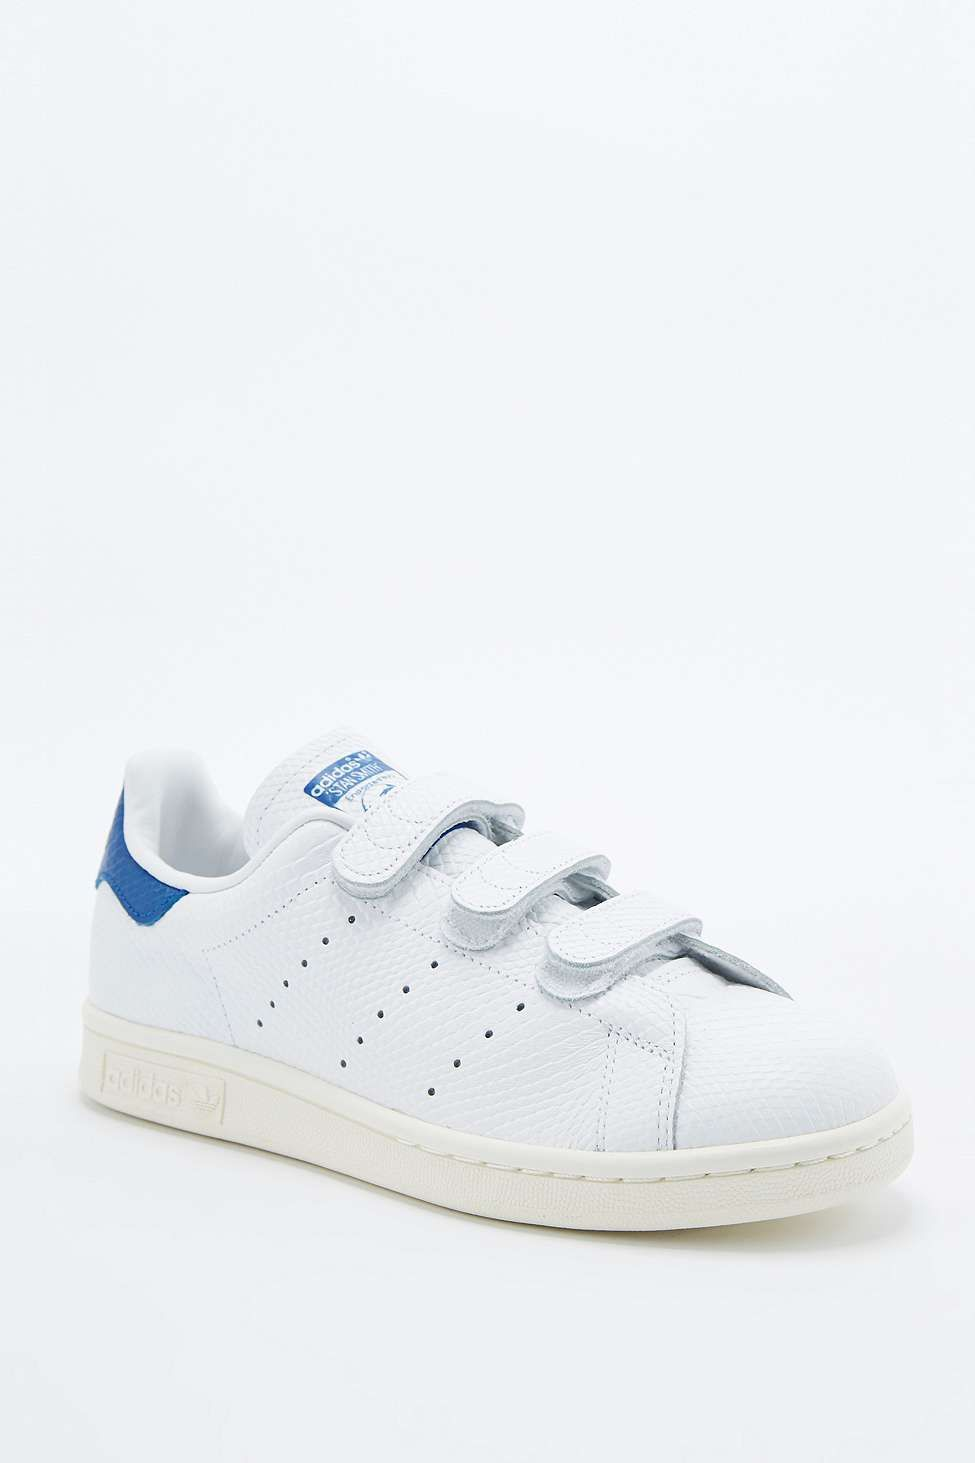 1f696735f2998 adidas Originals Stan Smith White   Blue Velcro Trainers